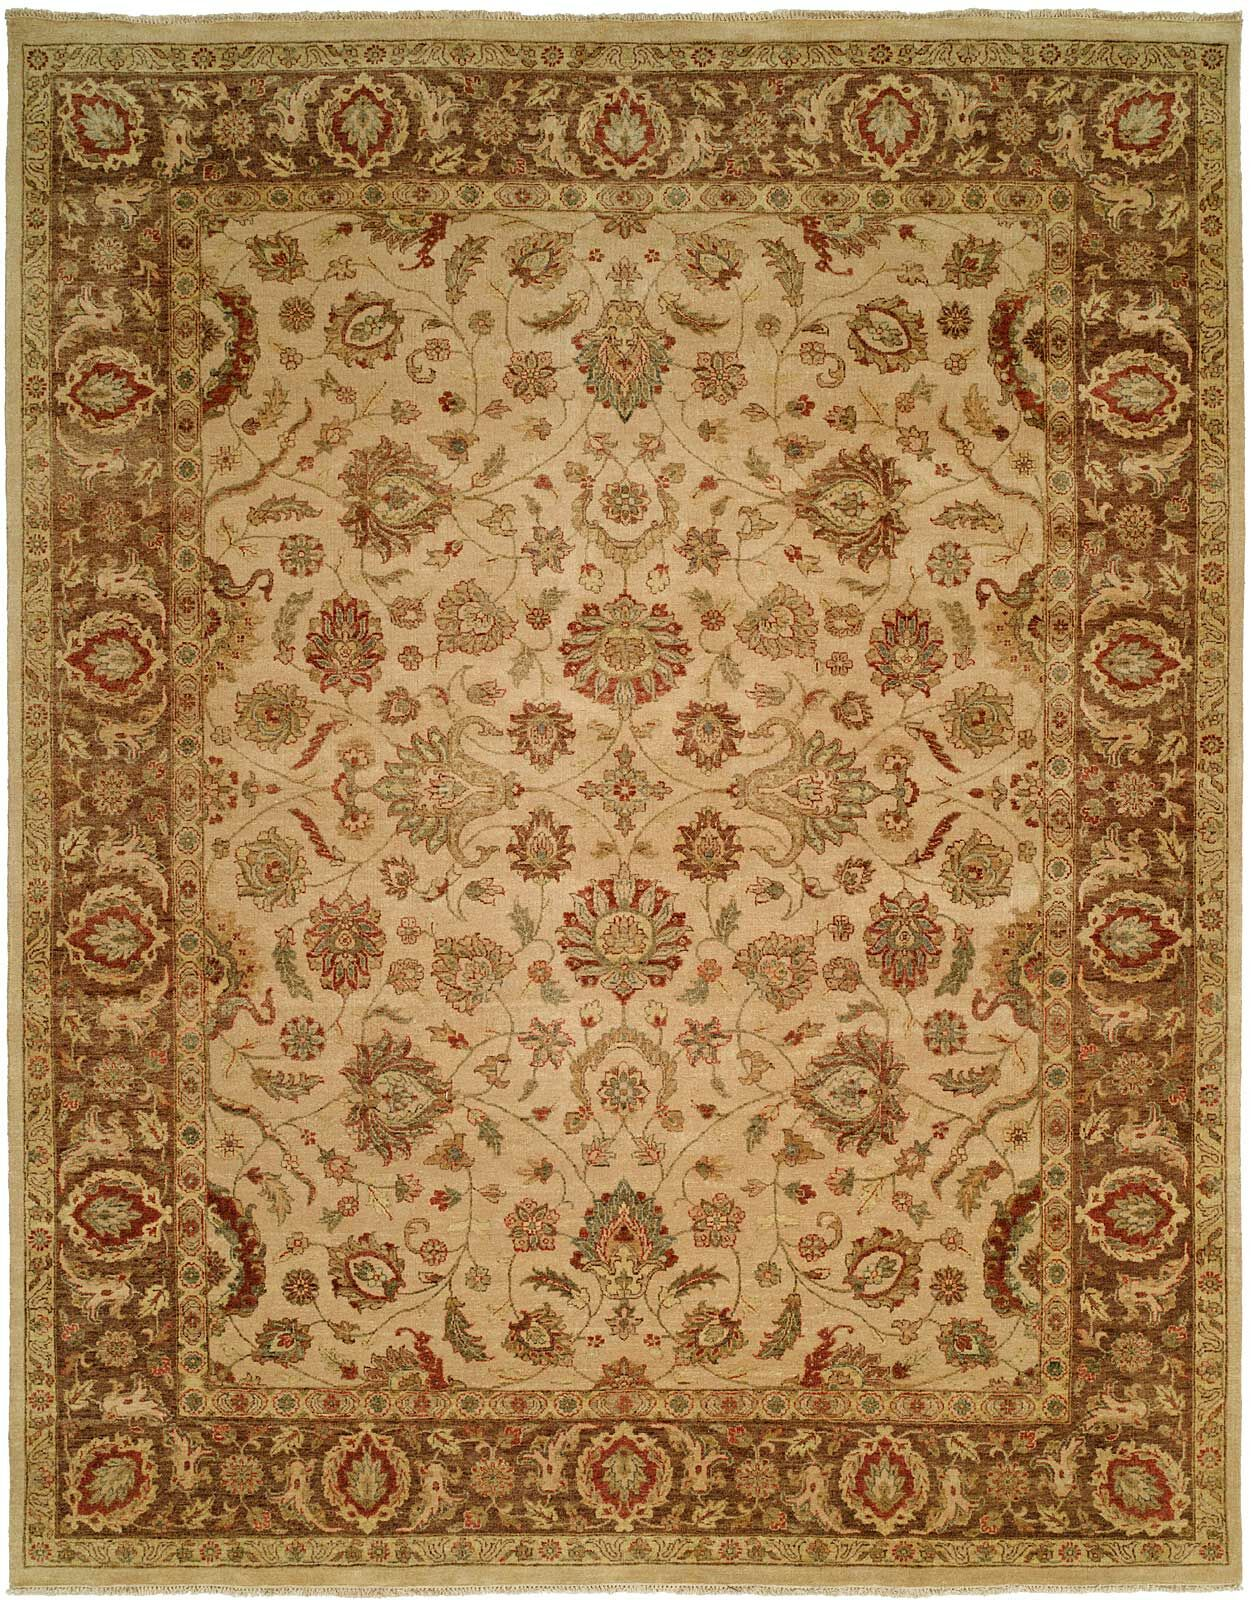 Mcgarity Hand Knotted Wool Ivory/Brown Area Rug Rug Size: Rectangle 2' x 3'